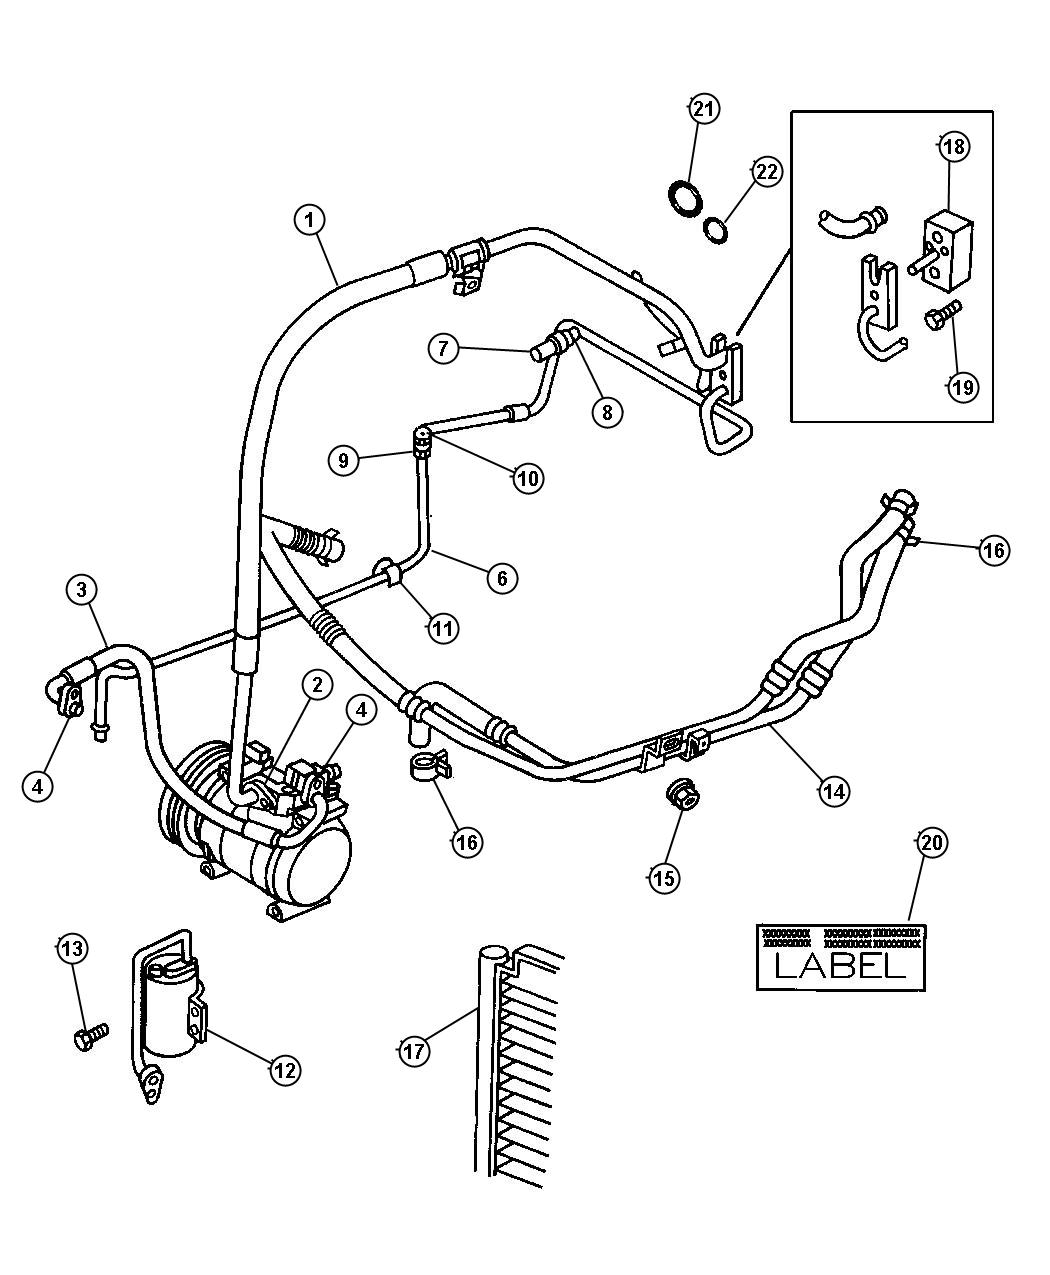 Dodge Caravan Used for: HOSE AND TUBE. Used for: Heater